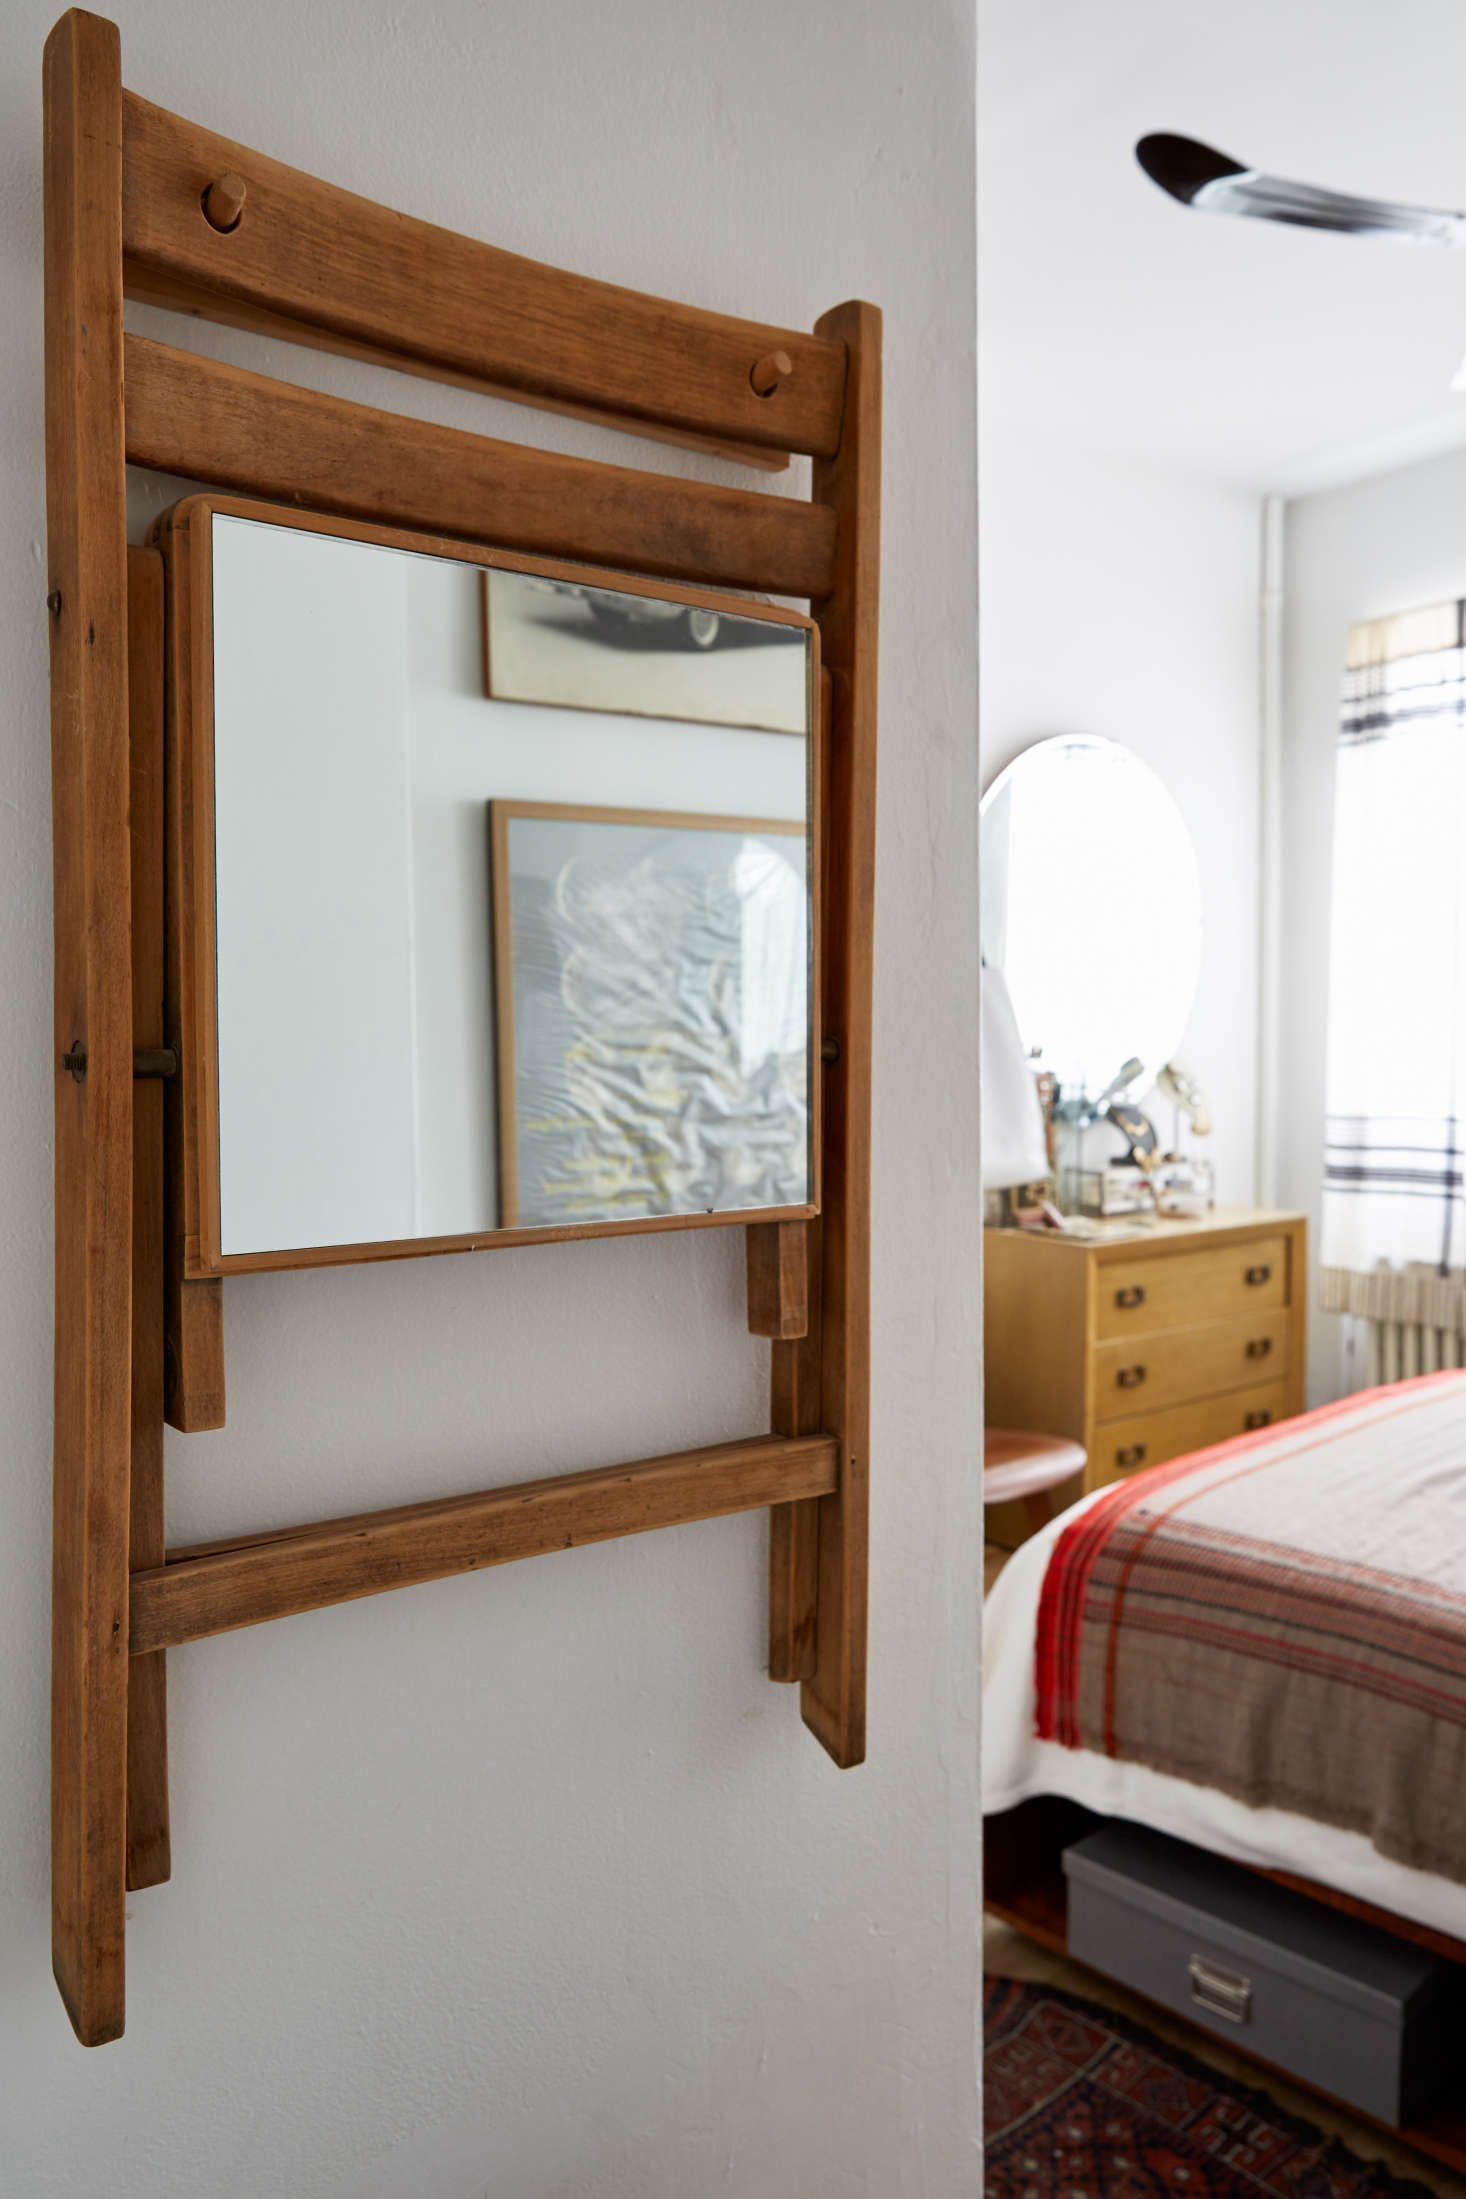 Small-space solutions: a mirror on the under seat of a hanging folding chair